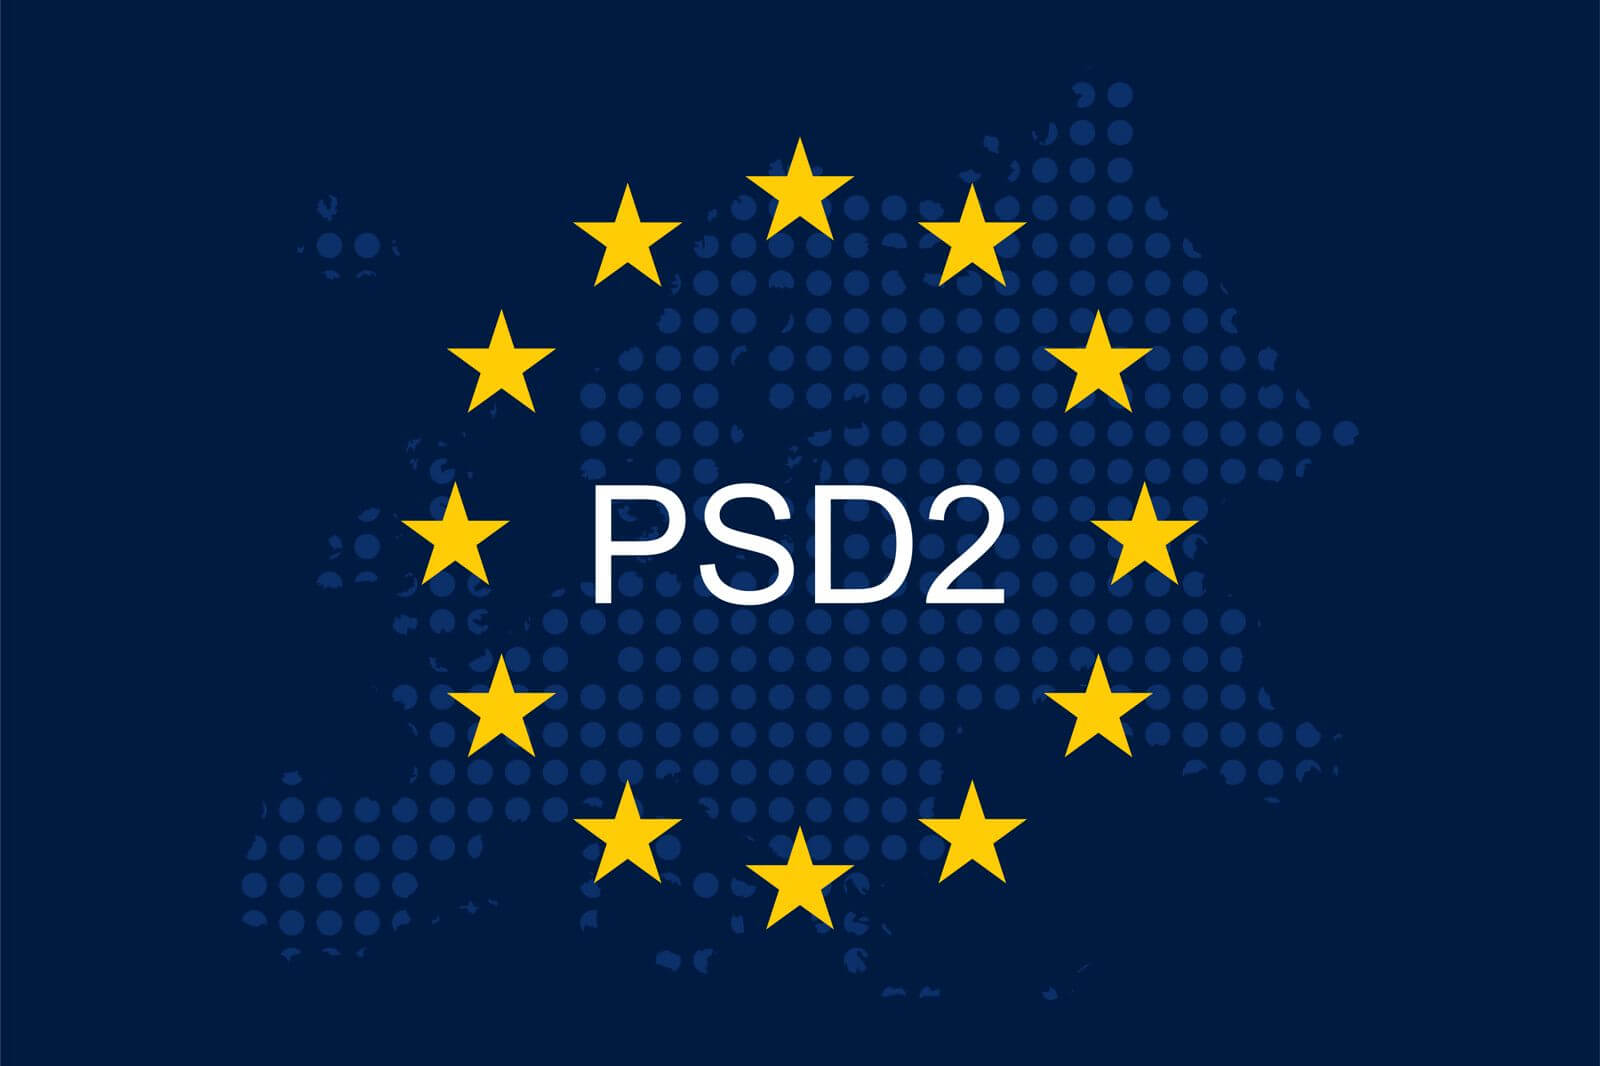 Payment Services Directive 2 - PSD2